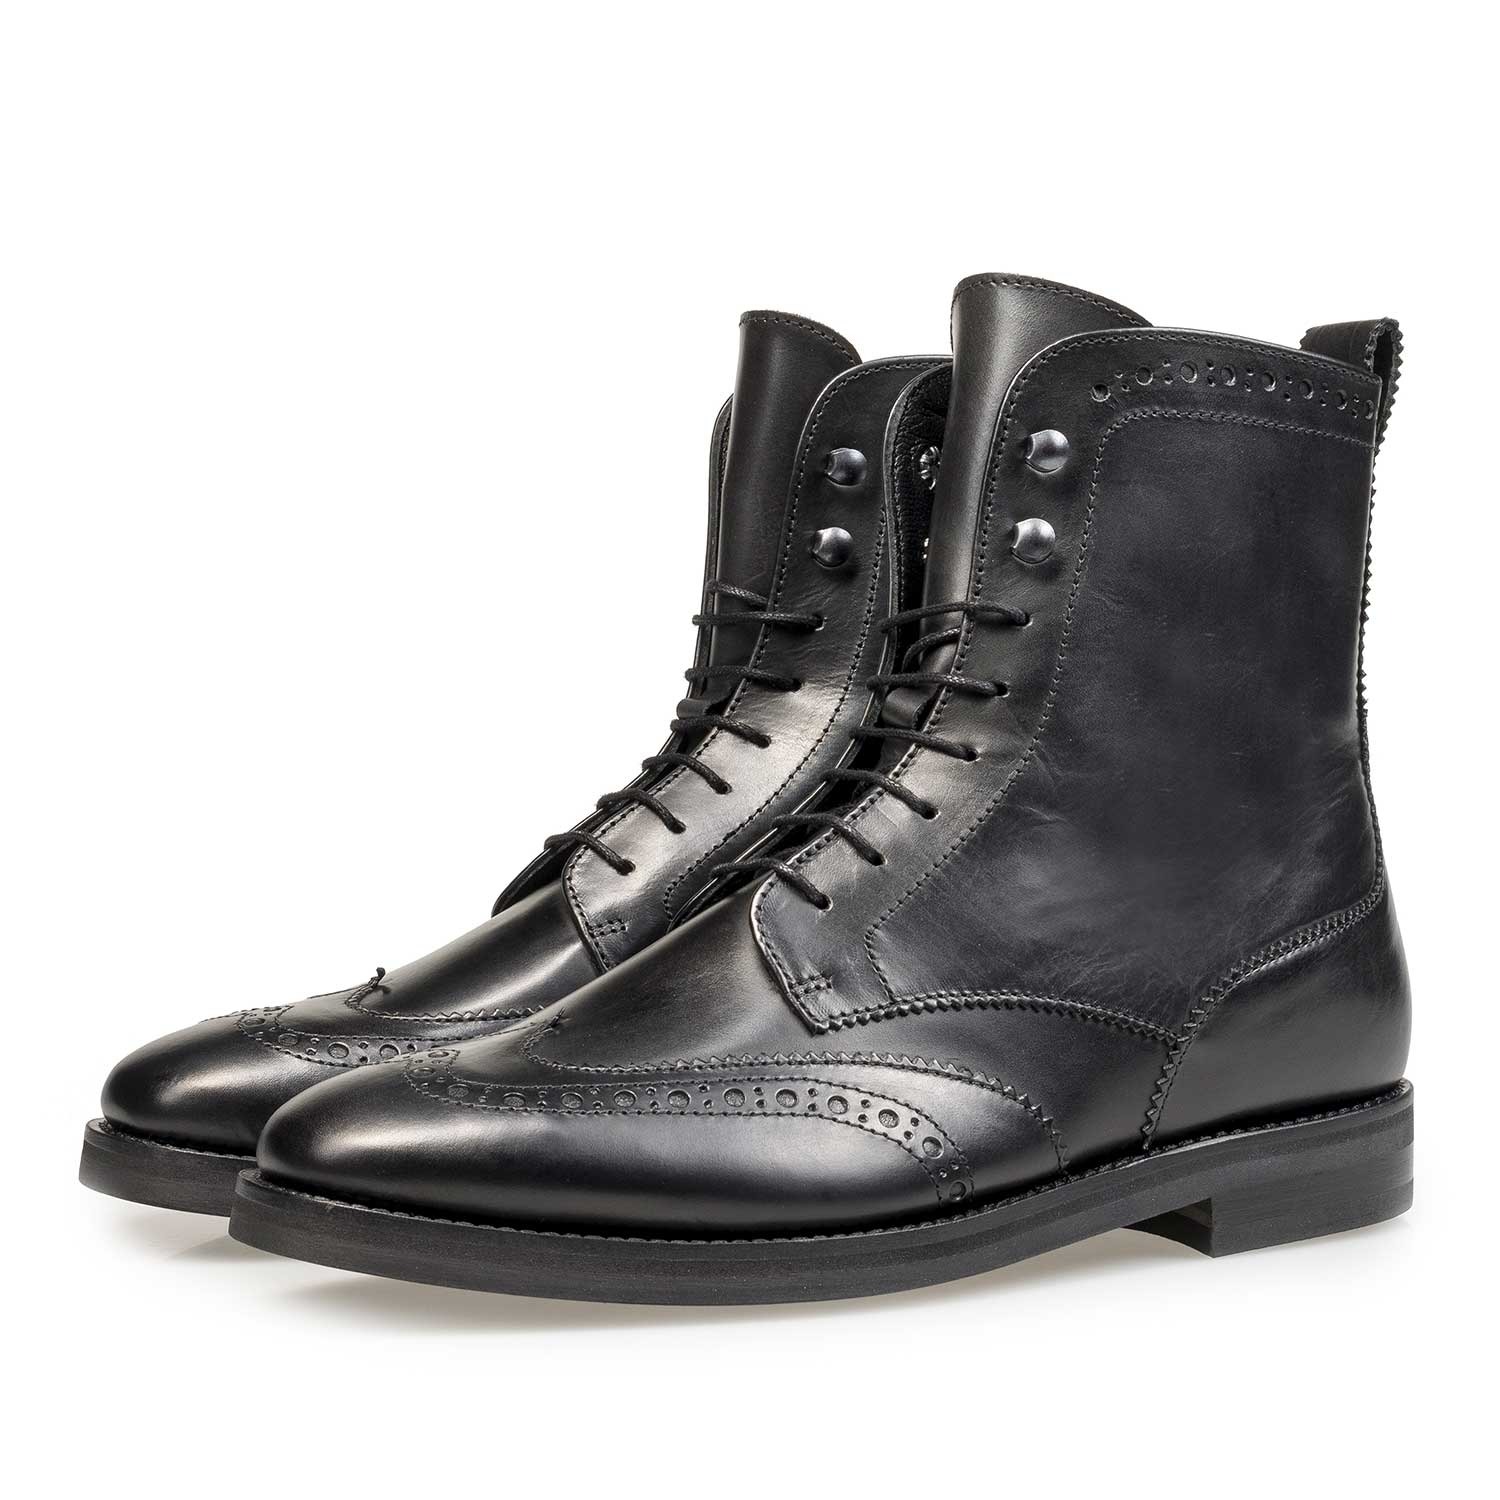 85603/00 - Black calf leather biker lace boot